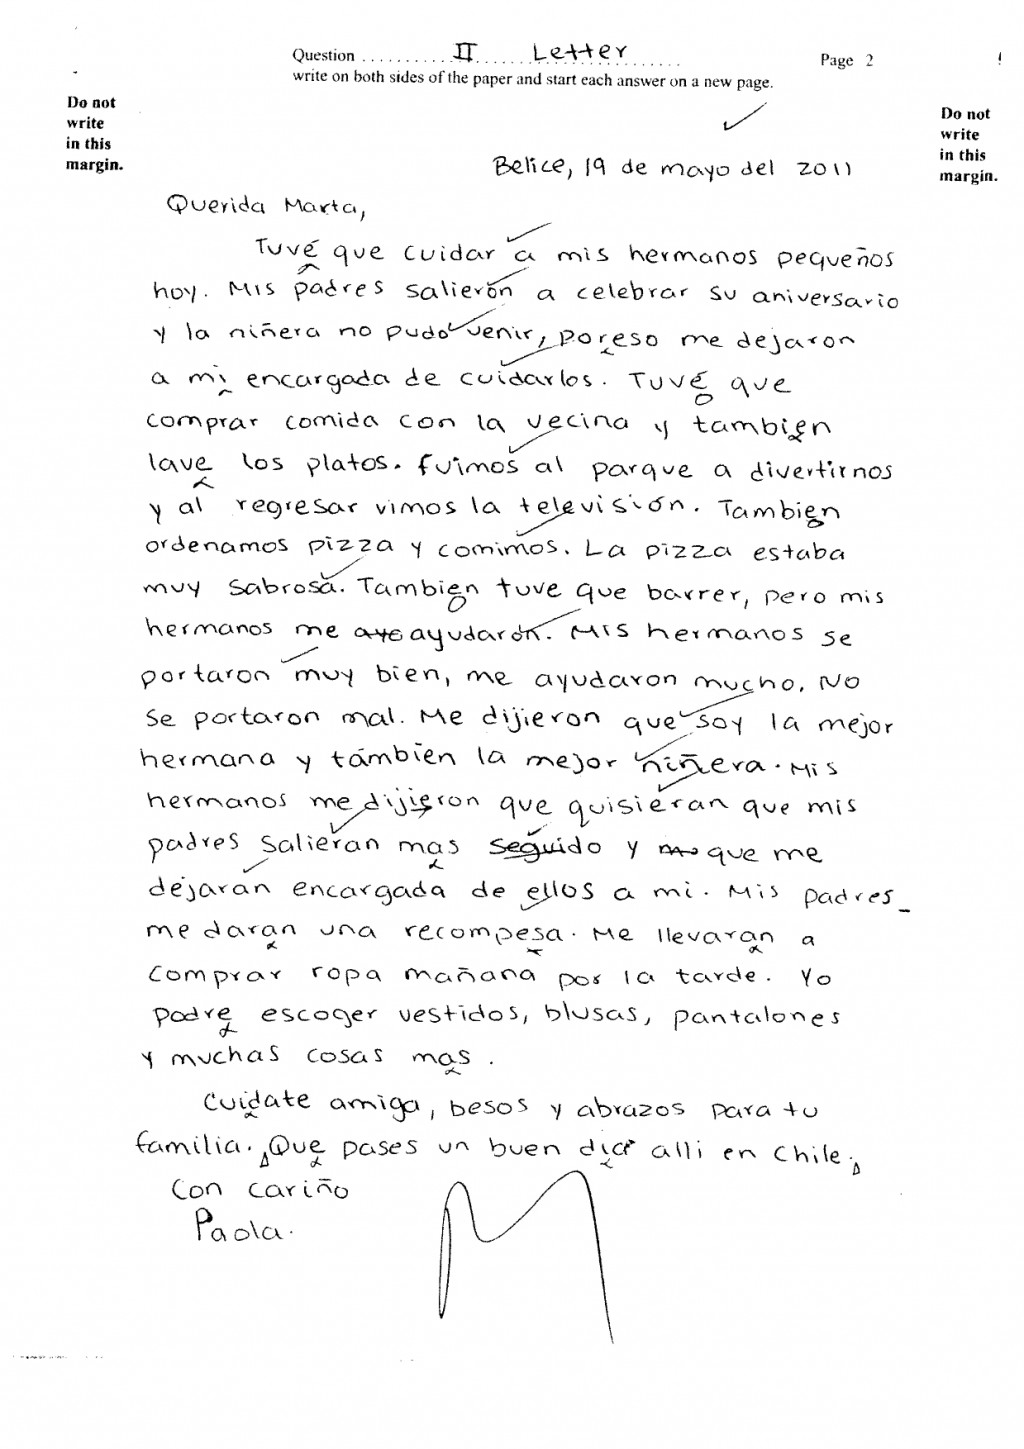 011 Translate My Essay Into Spanish Example Csec June2011 Paper2 Sectionii Letter Pg2 Ex  RemarkableLarge